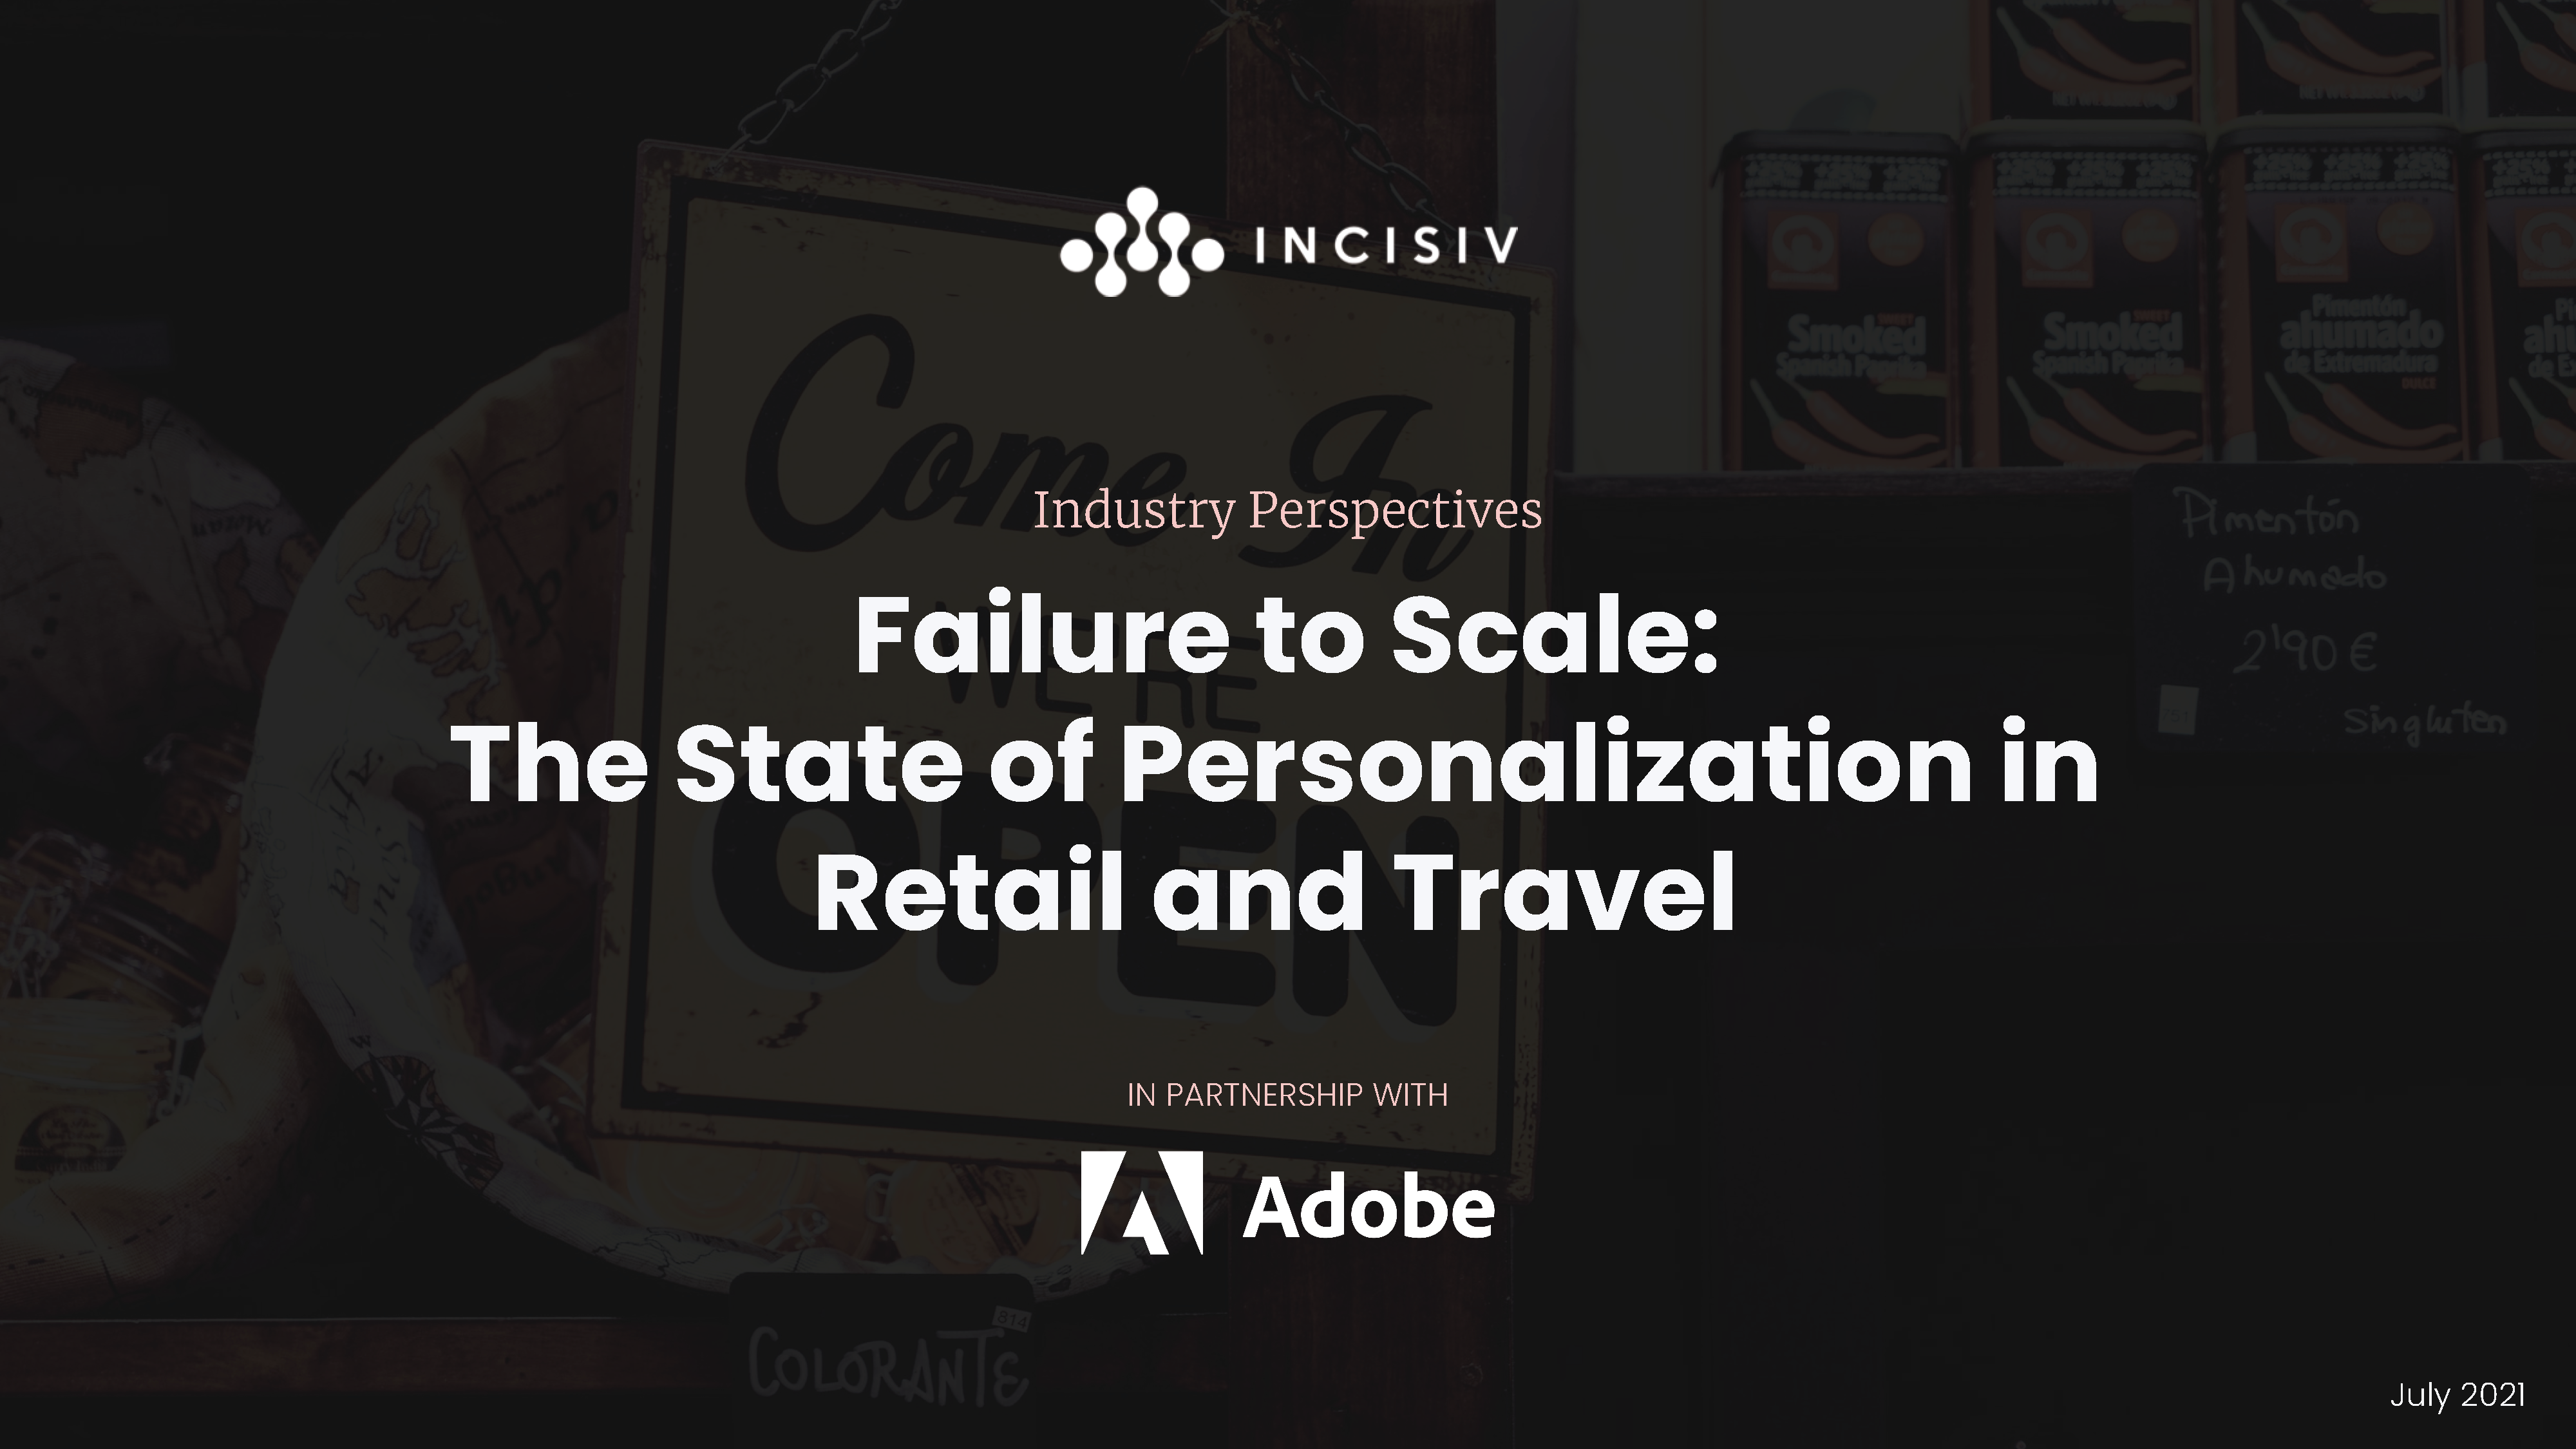 Failure to Scale: The State of Personalization in Retail and Travel